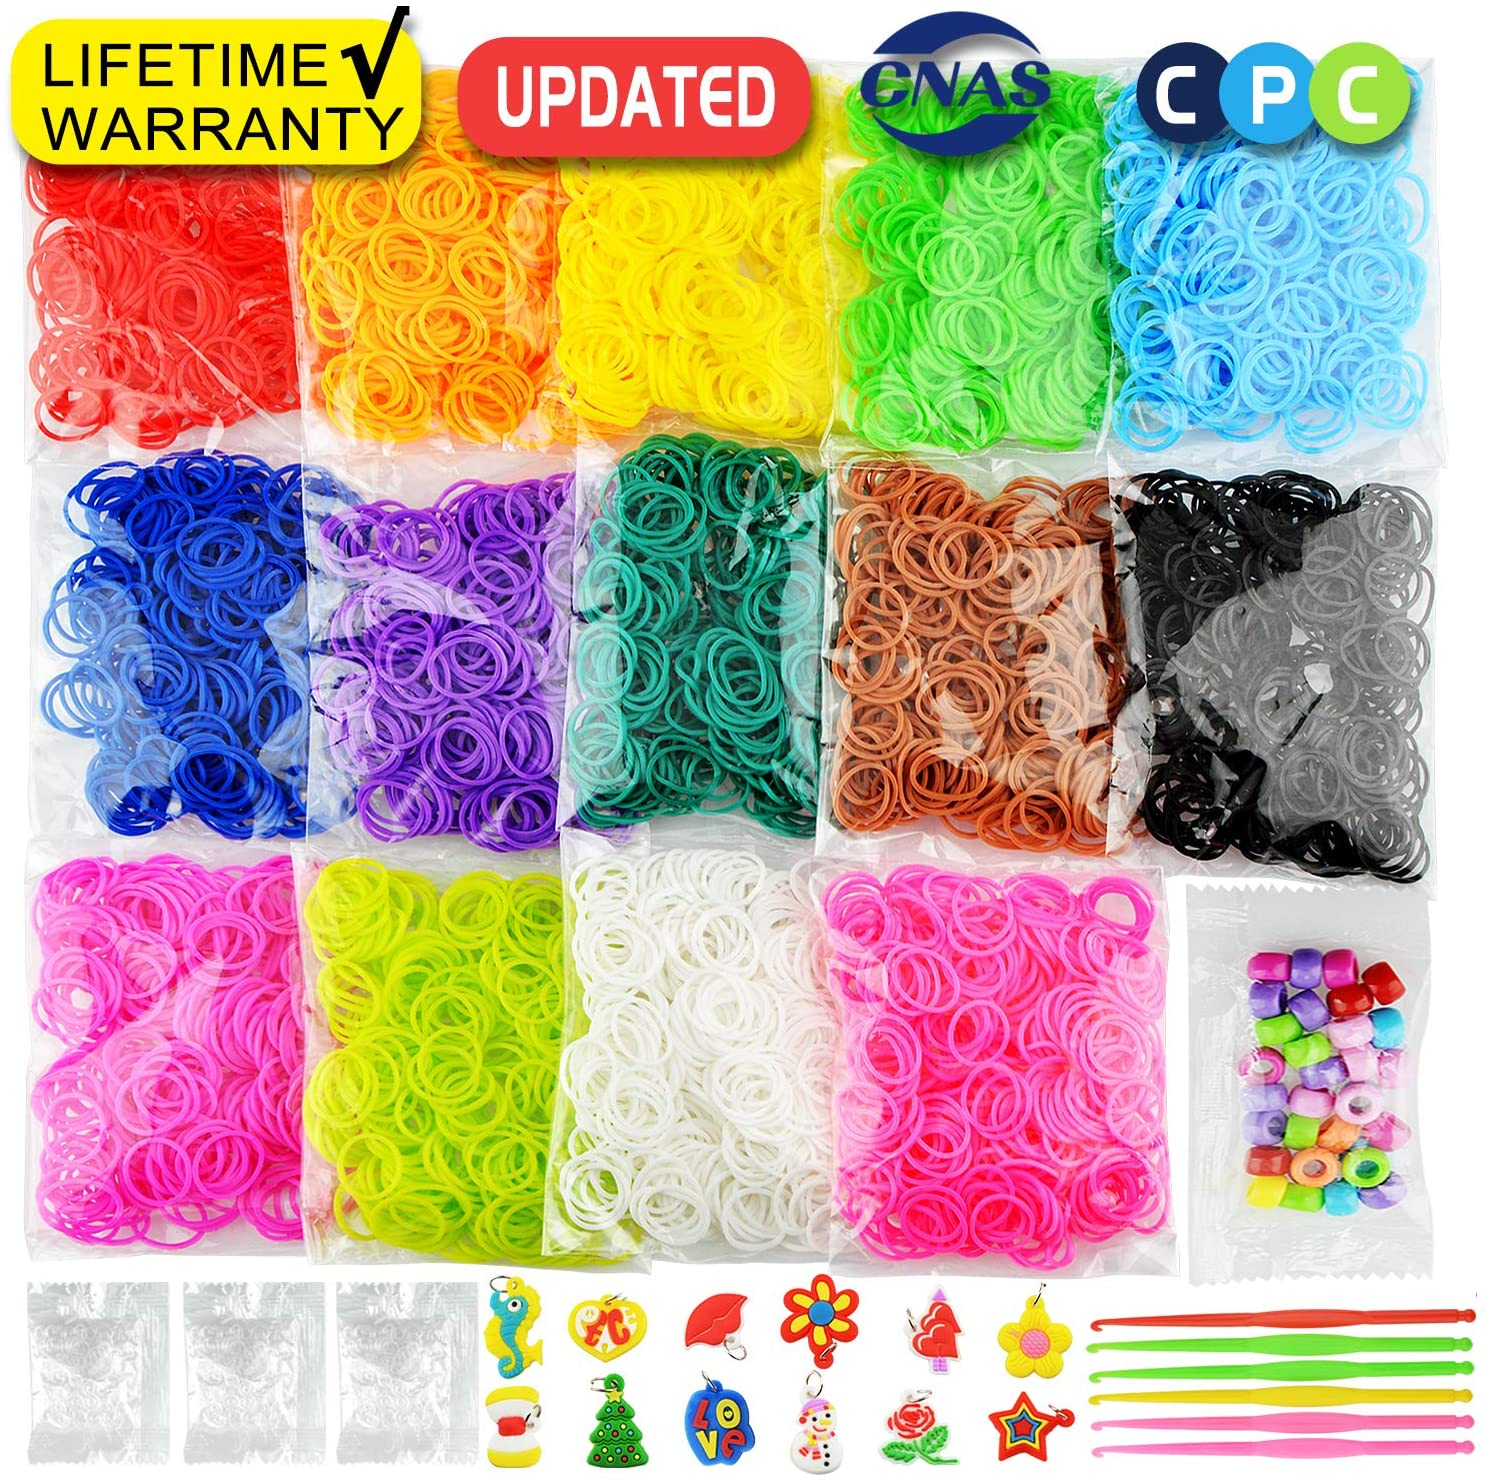 6900+ New Rainbow Rubber Bands Bracelet Kit, 2020 New Loom Bands in 14 Colors- Great Gift for Handicraft Lovers & Kids. No Loom Board Included.